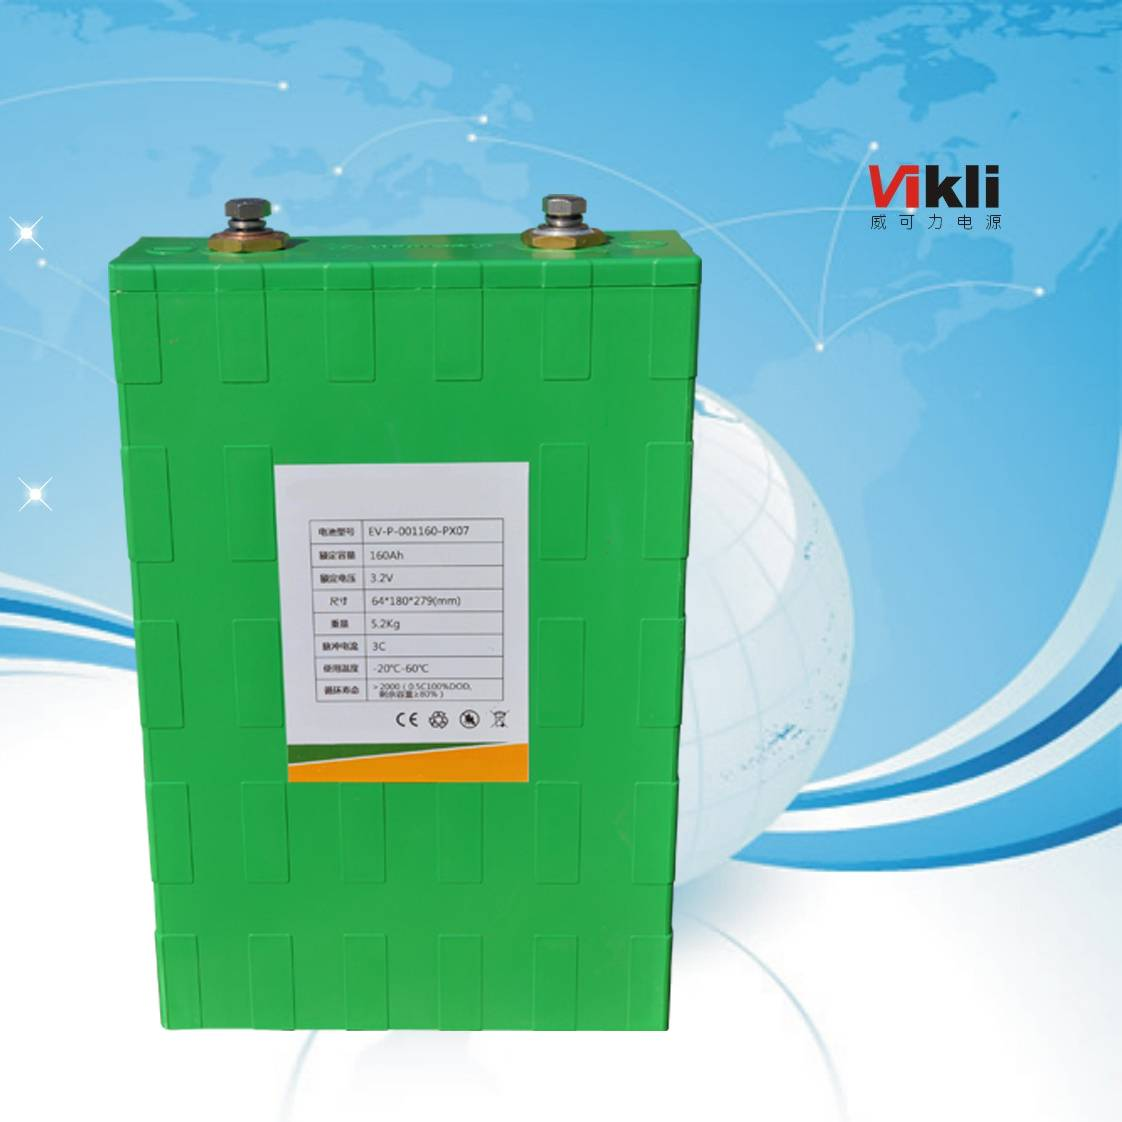 3.2V LiFePO4 power battery ,lithium ion phosphate battery for electric car